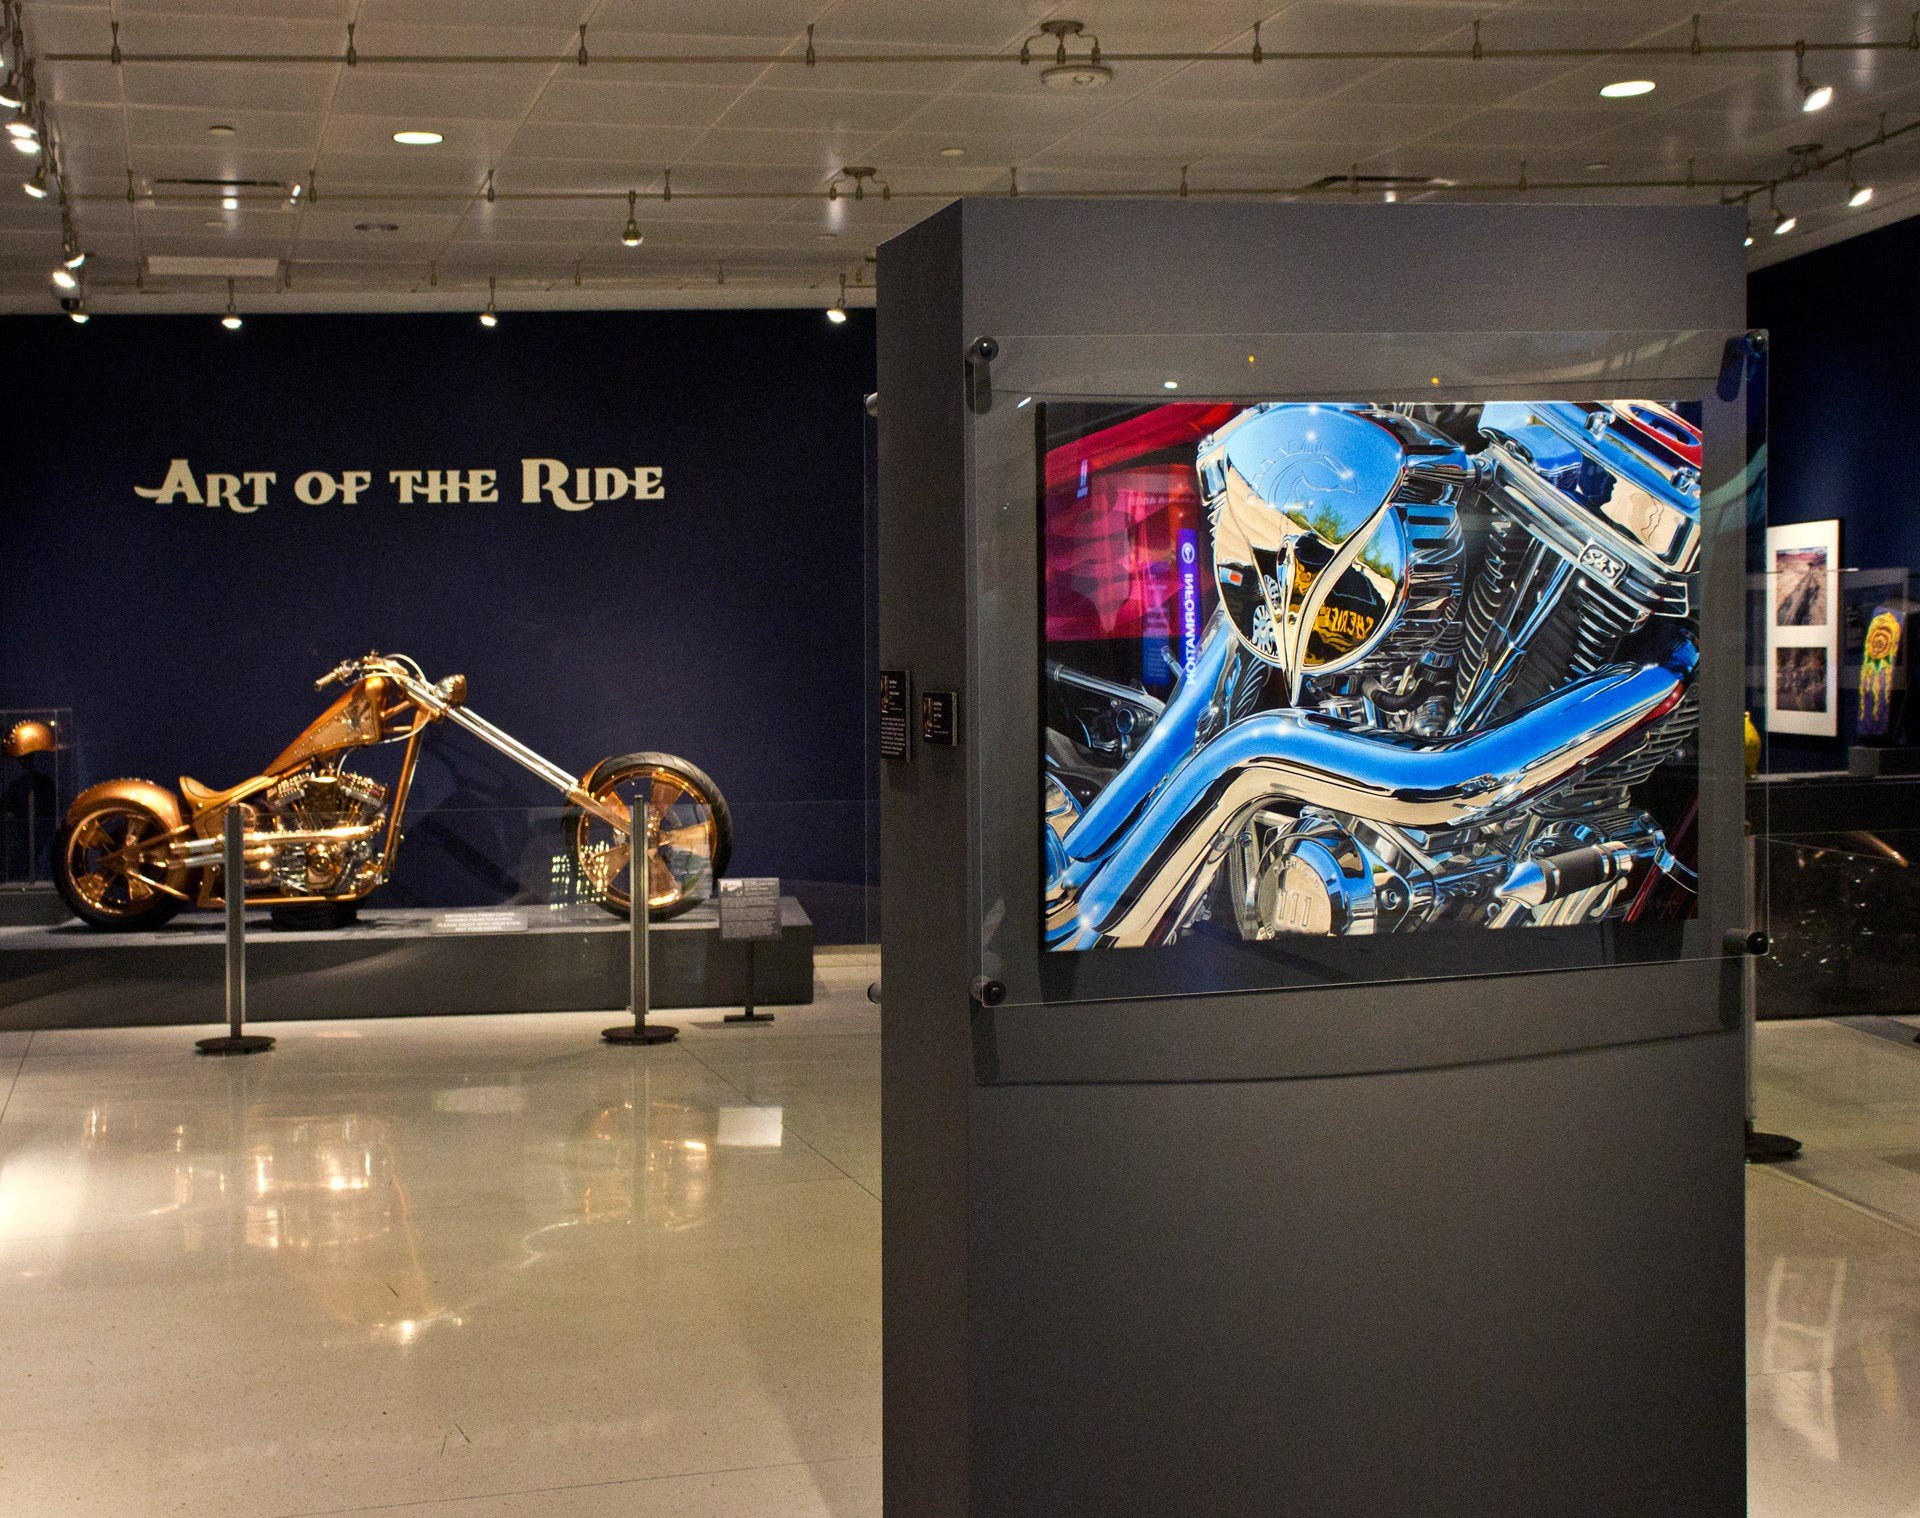 Art of the Ride exhibit at Sky Harbor. (Source: PHX Sky Harbor Airport)